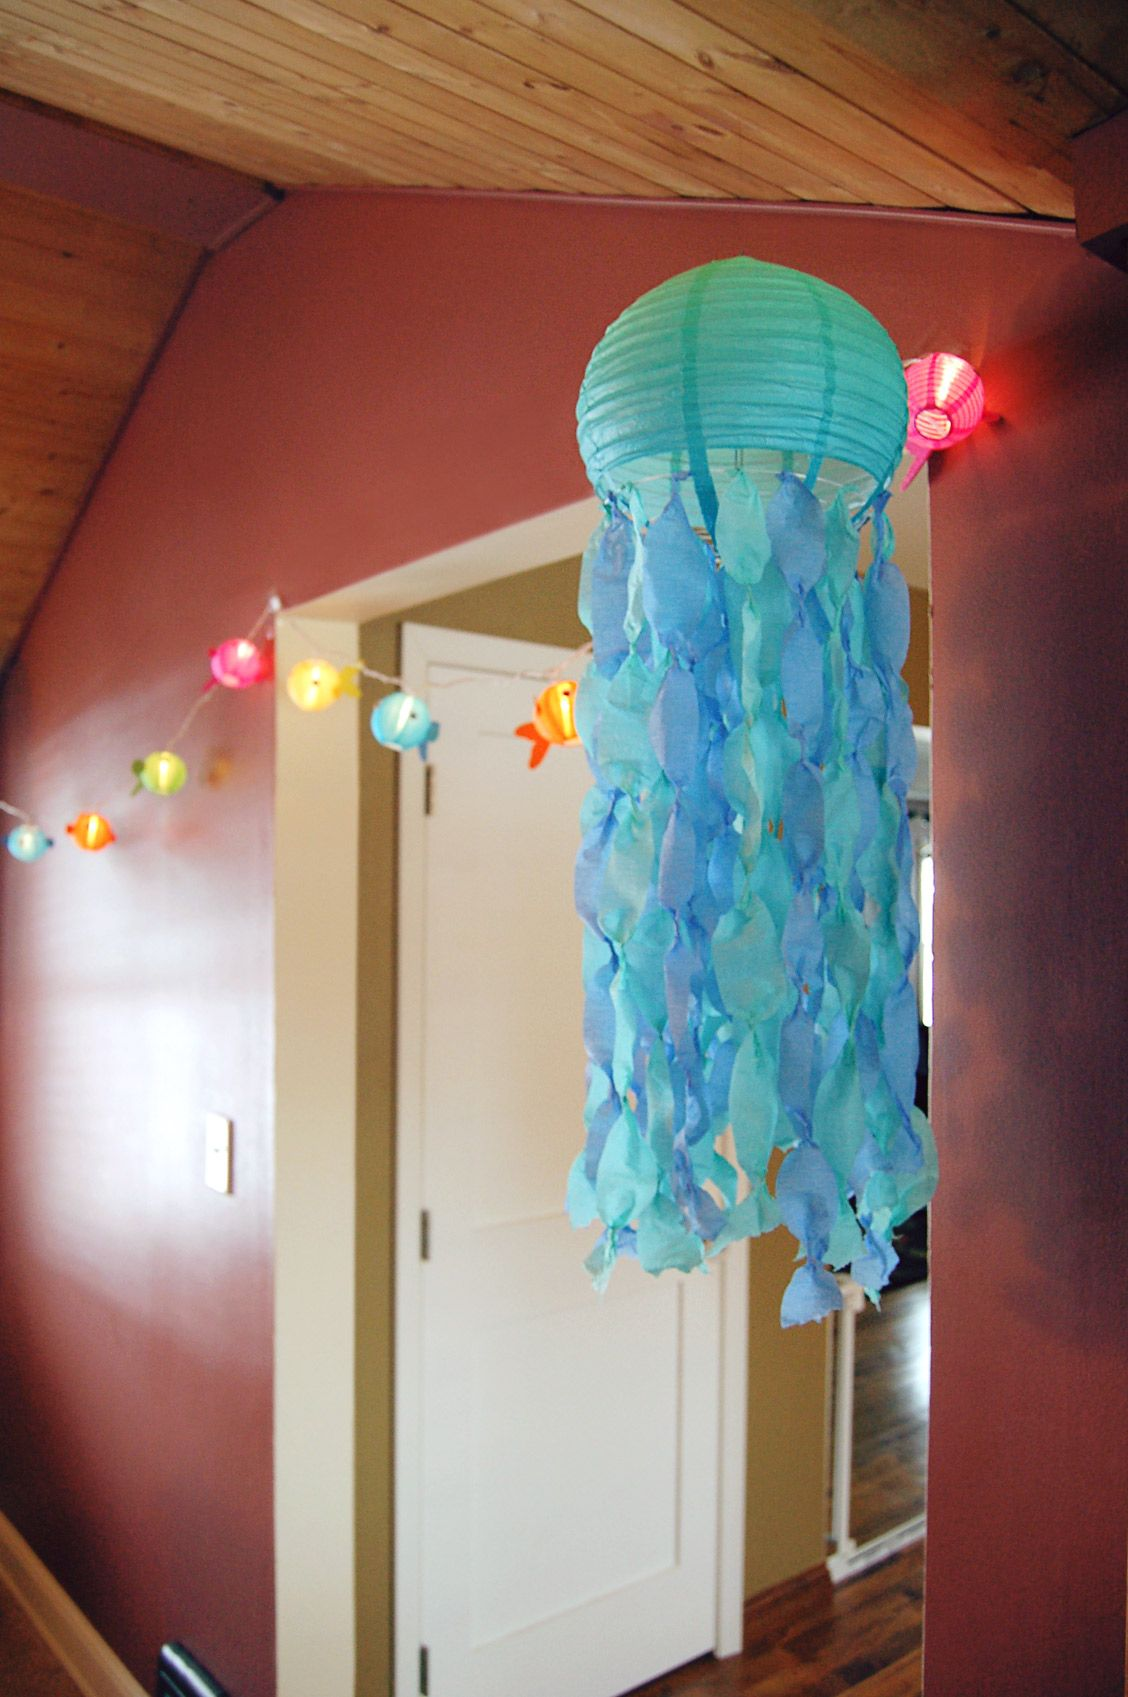 Paper Lantern Jellyfish Pleasing Jellyfish Lanterns #birthdayexpre…  Parties Mermaid  Under The Design Inspiration